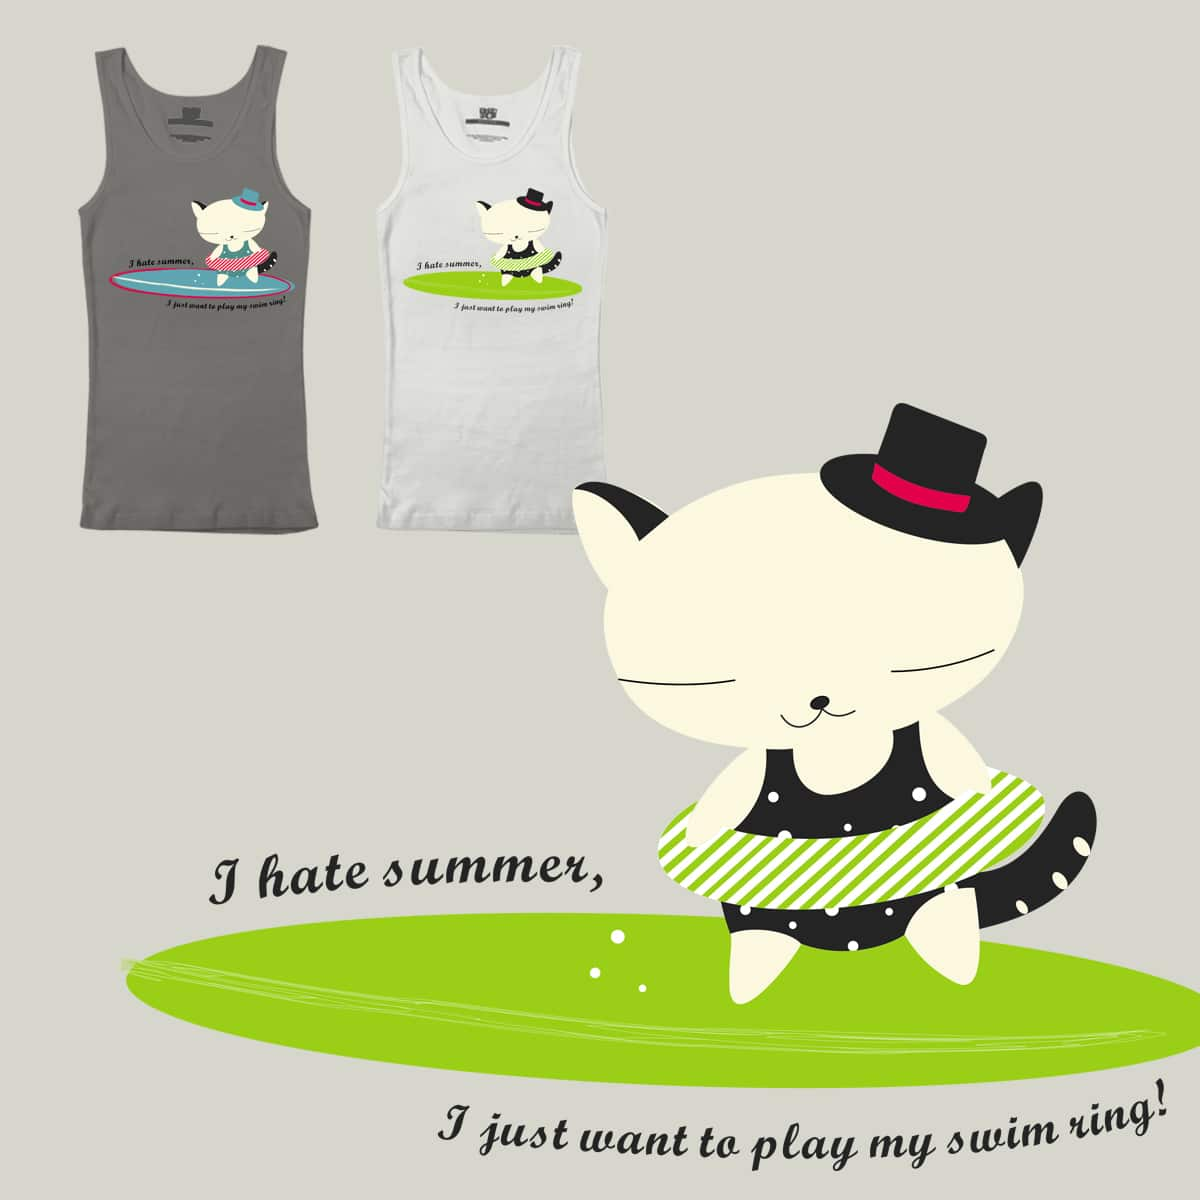 I hate summer! by alicemintgreen on Threadless